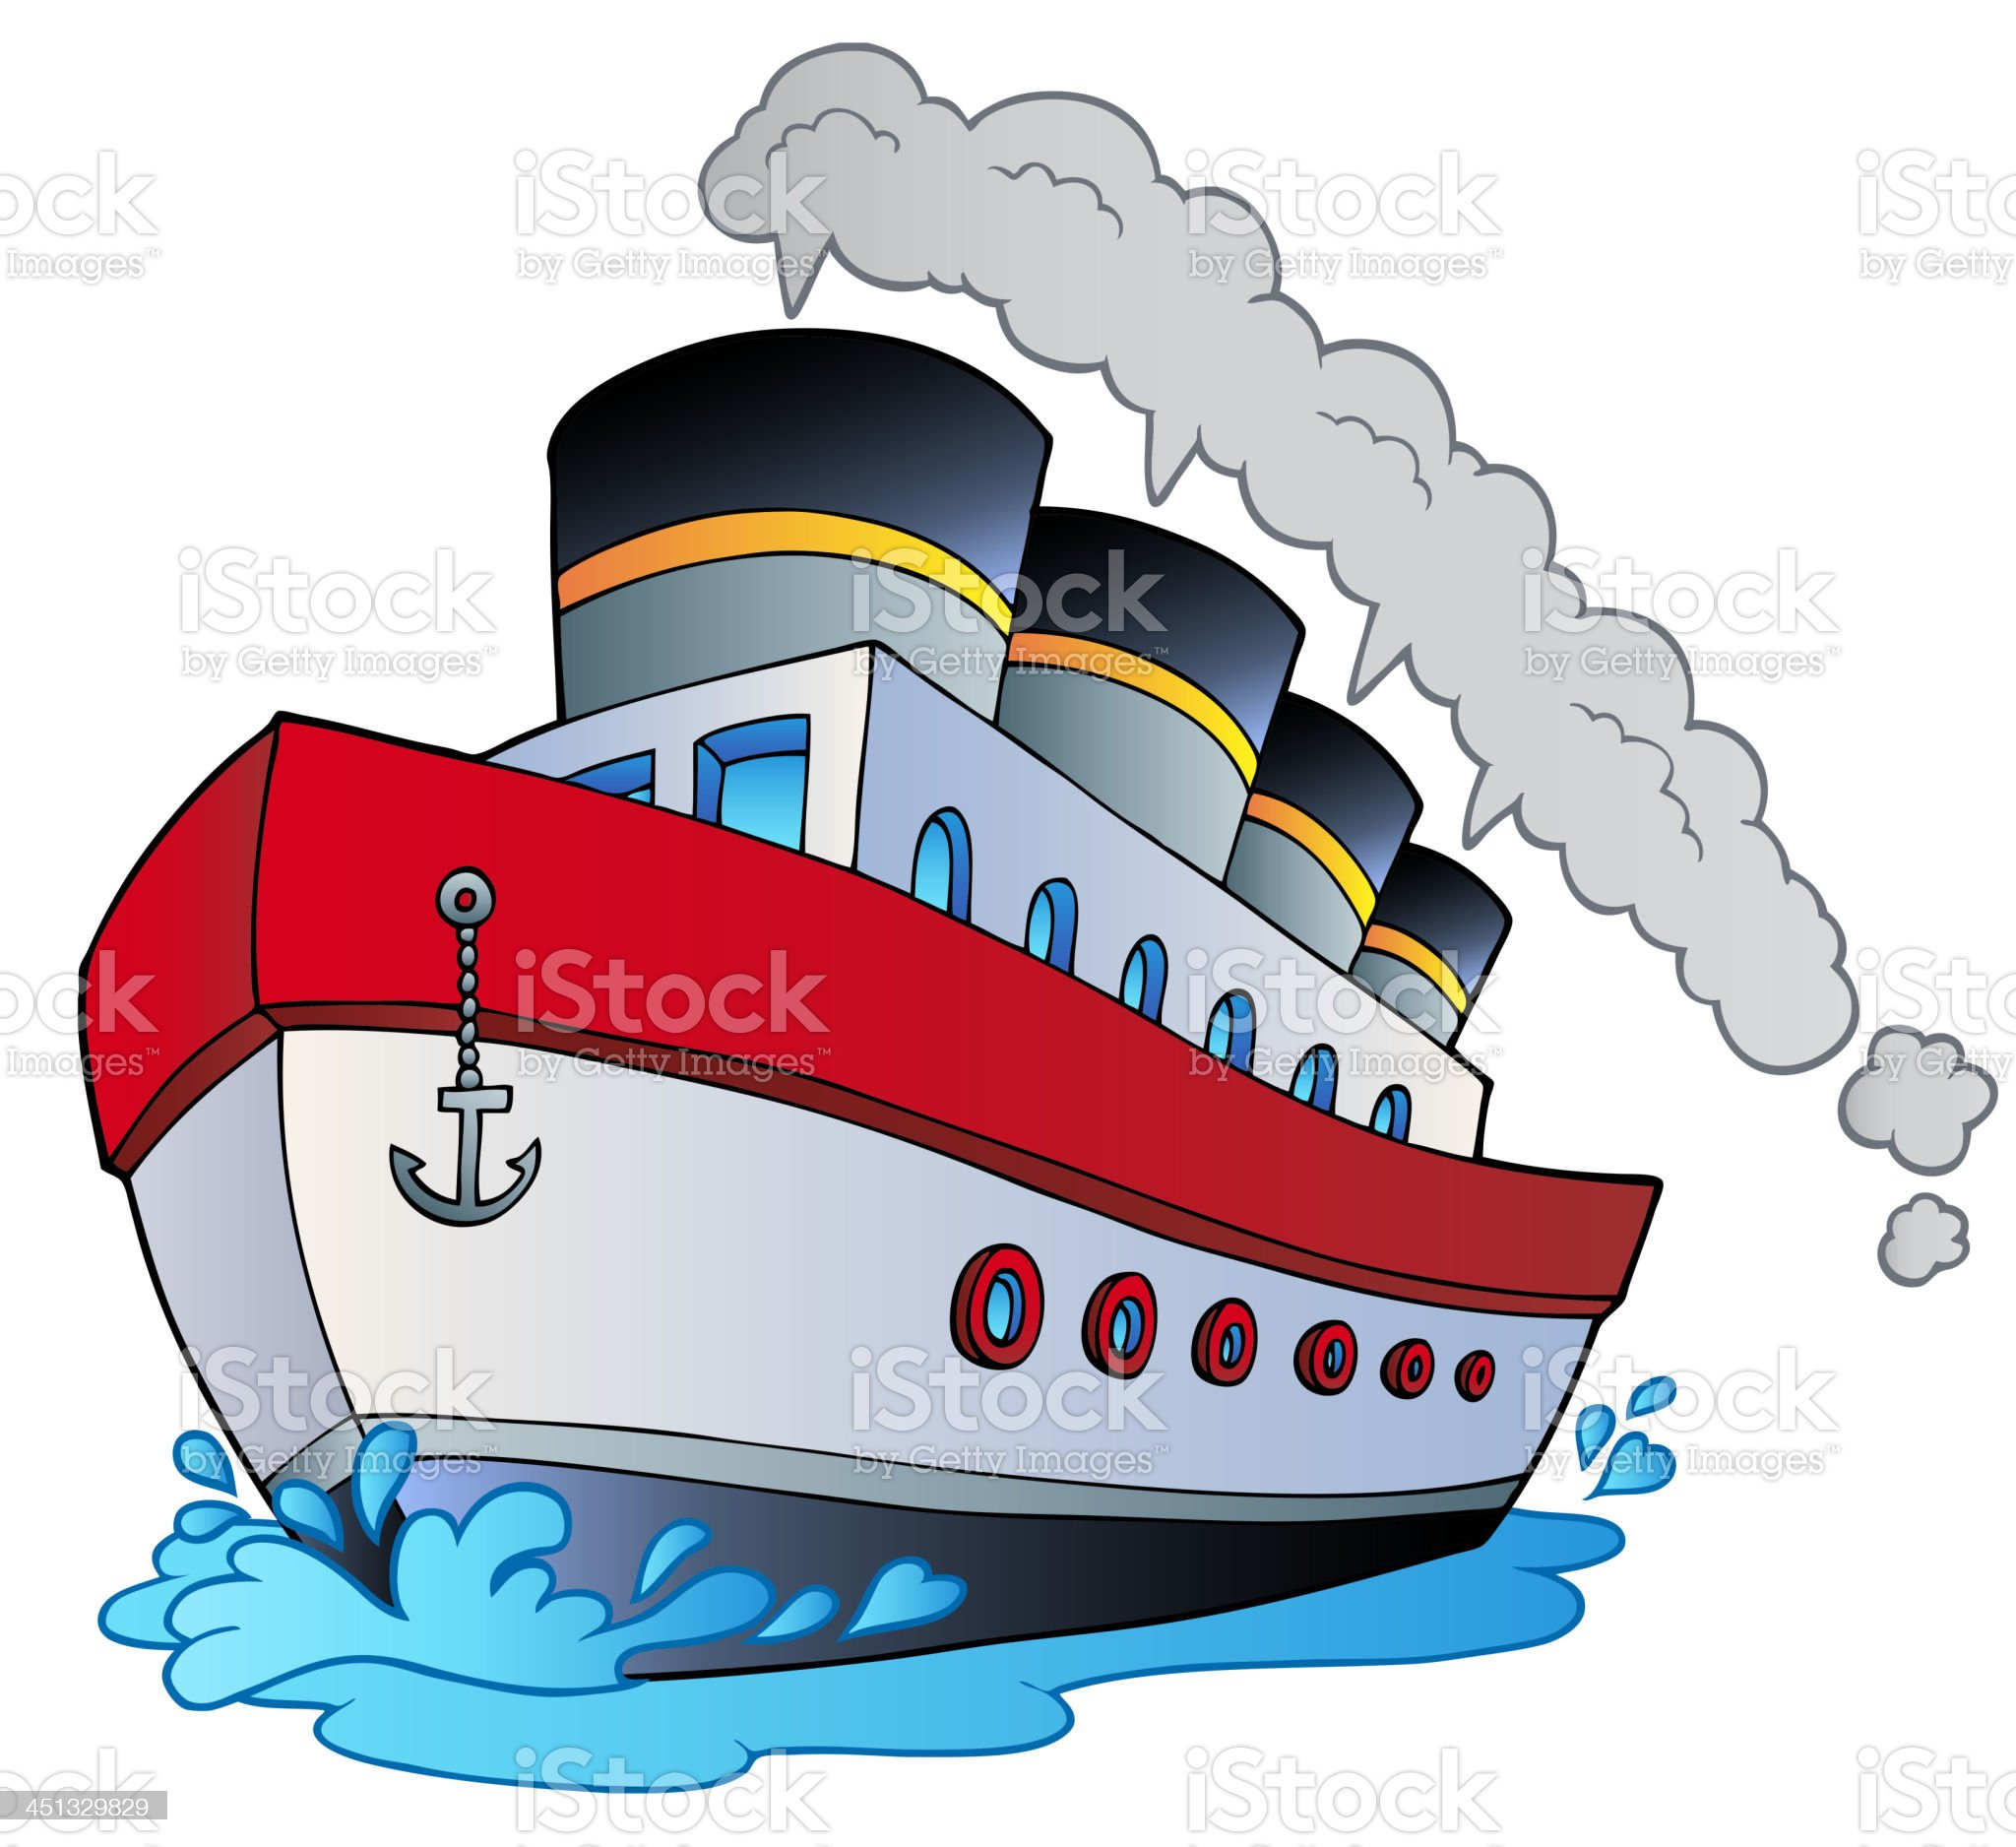 Big cartoon steamship royalty-free stock vector art